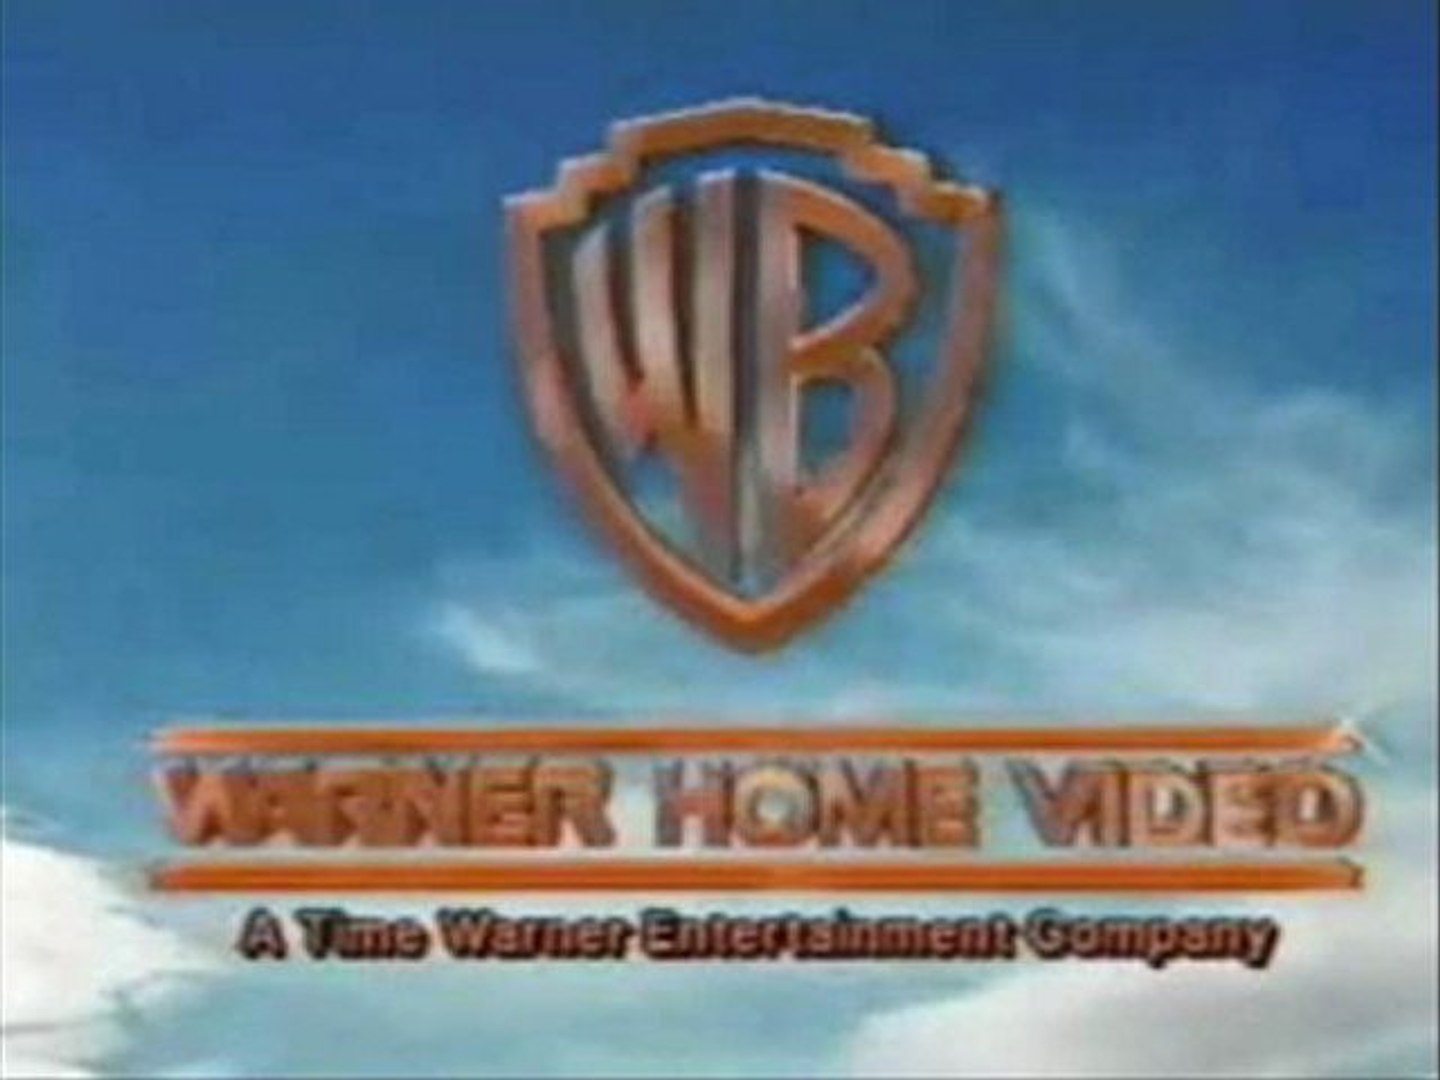 Talk To The Warner Home Video Logo Video Dailymotion